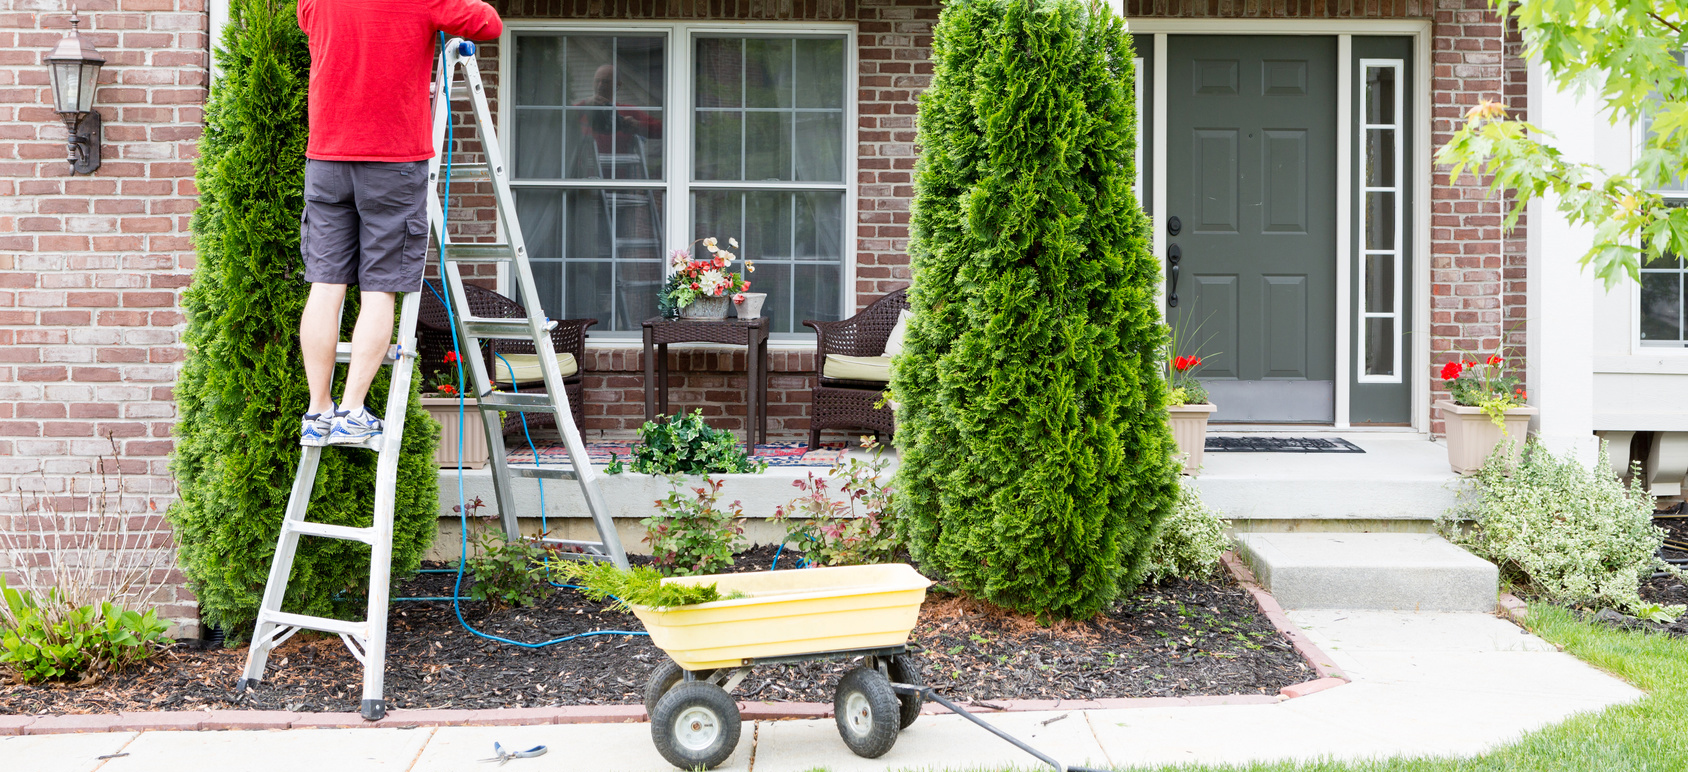 There's lots to do both inside and outside your home as we move into spring